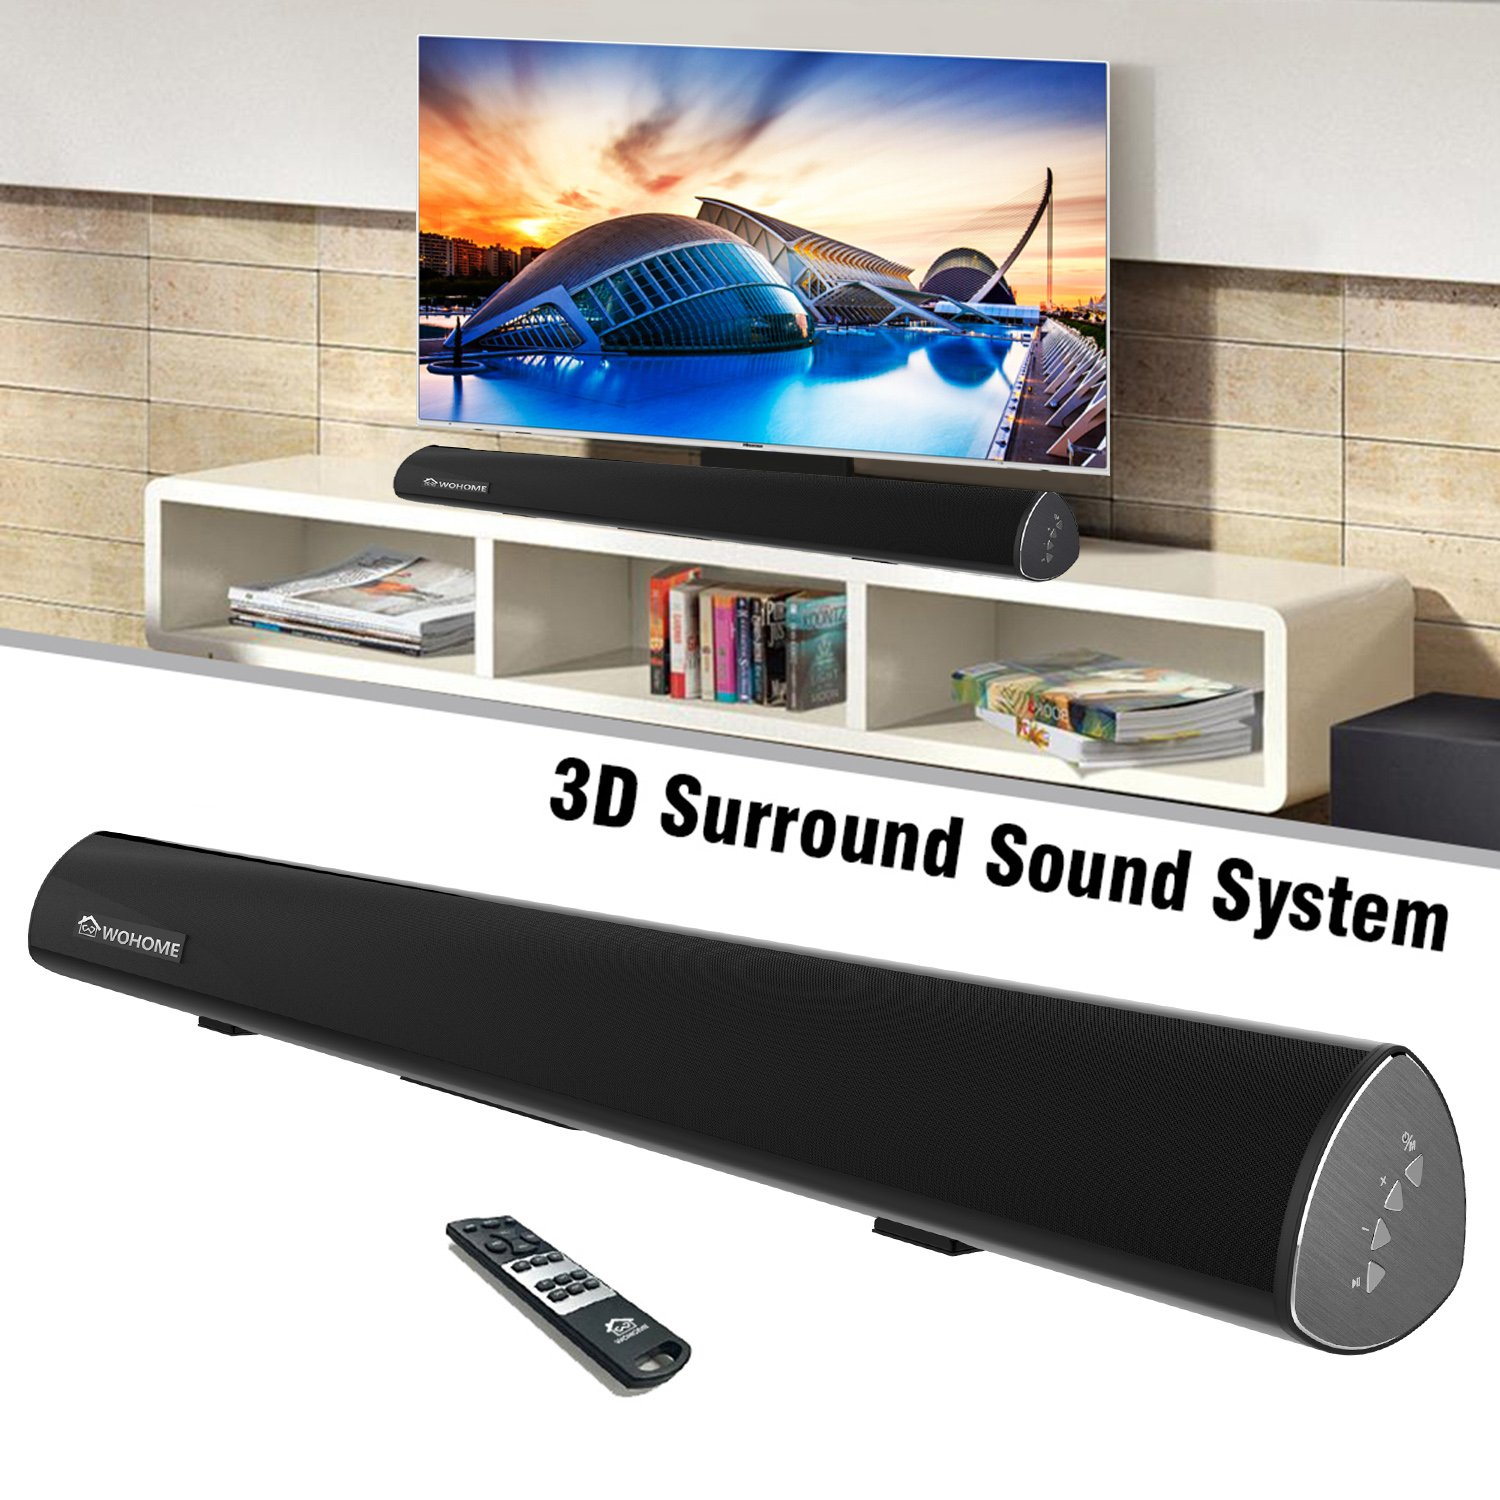 Sound Bar, TV SoundBar 80W 38-Inch Wireless Wired Connection Home Theater Audio Speaker ( 6 Speakers, 2 Bass Reflex Tubes, Remote Control, Wall Mountable, Suit for 40 or Above TV) by Wohome